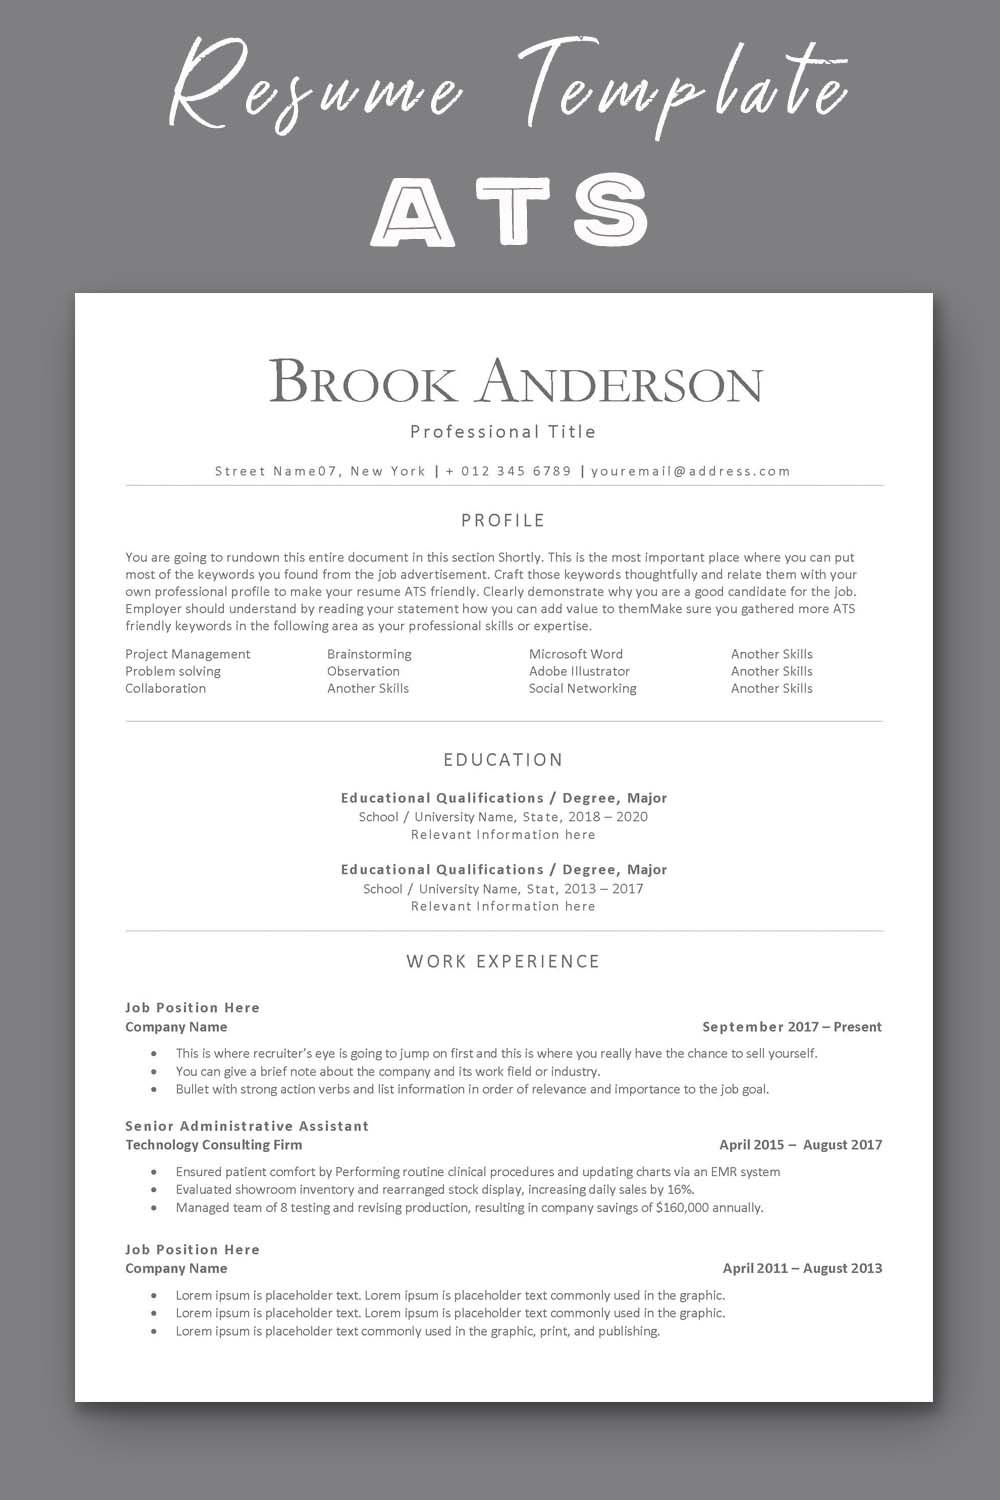 Ats Compatible Resume Template Applicant Tracking System Etsy Resume Template Resume Template Professional Professional Resume